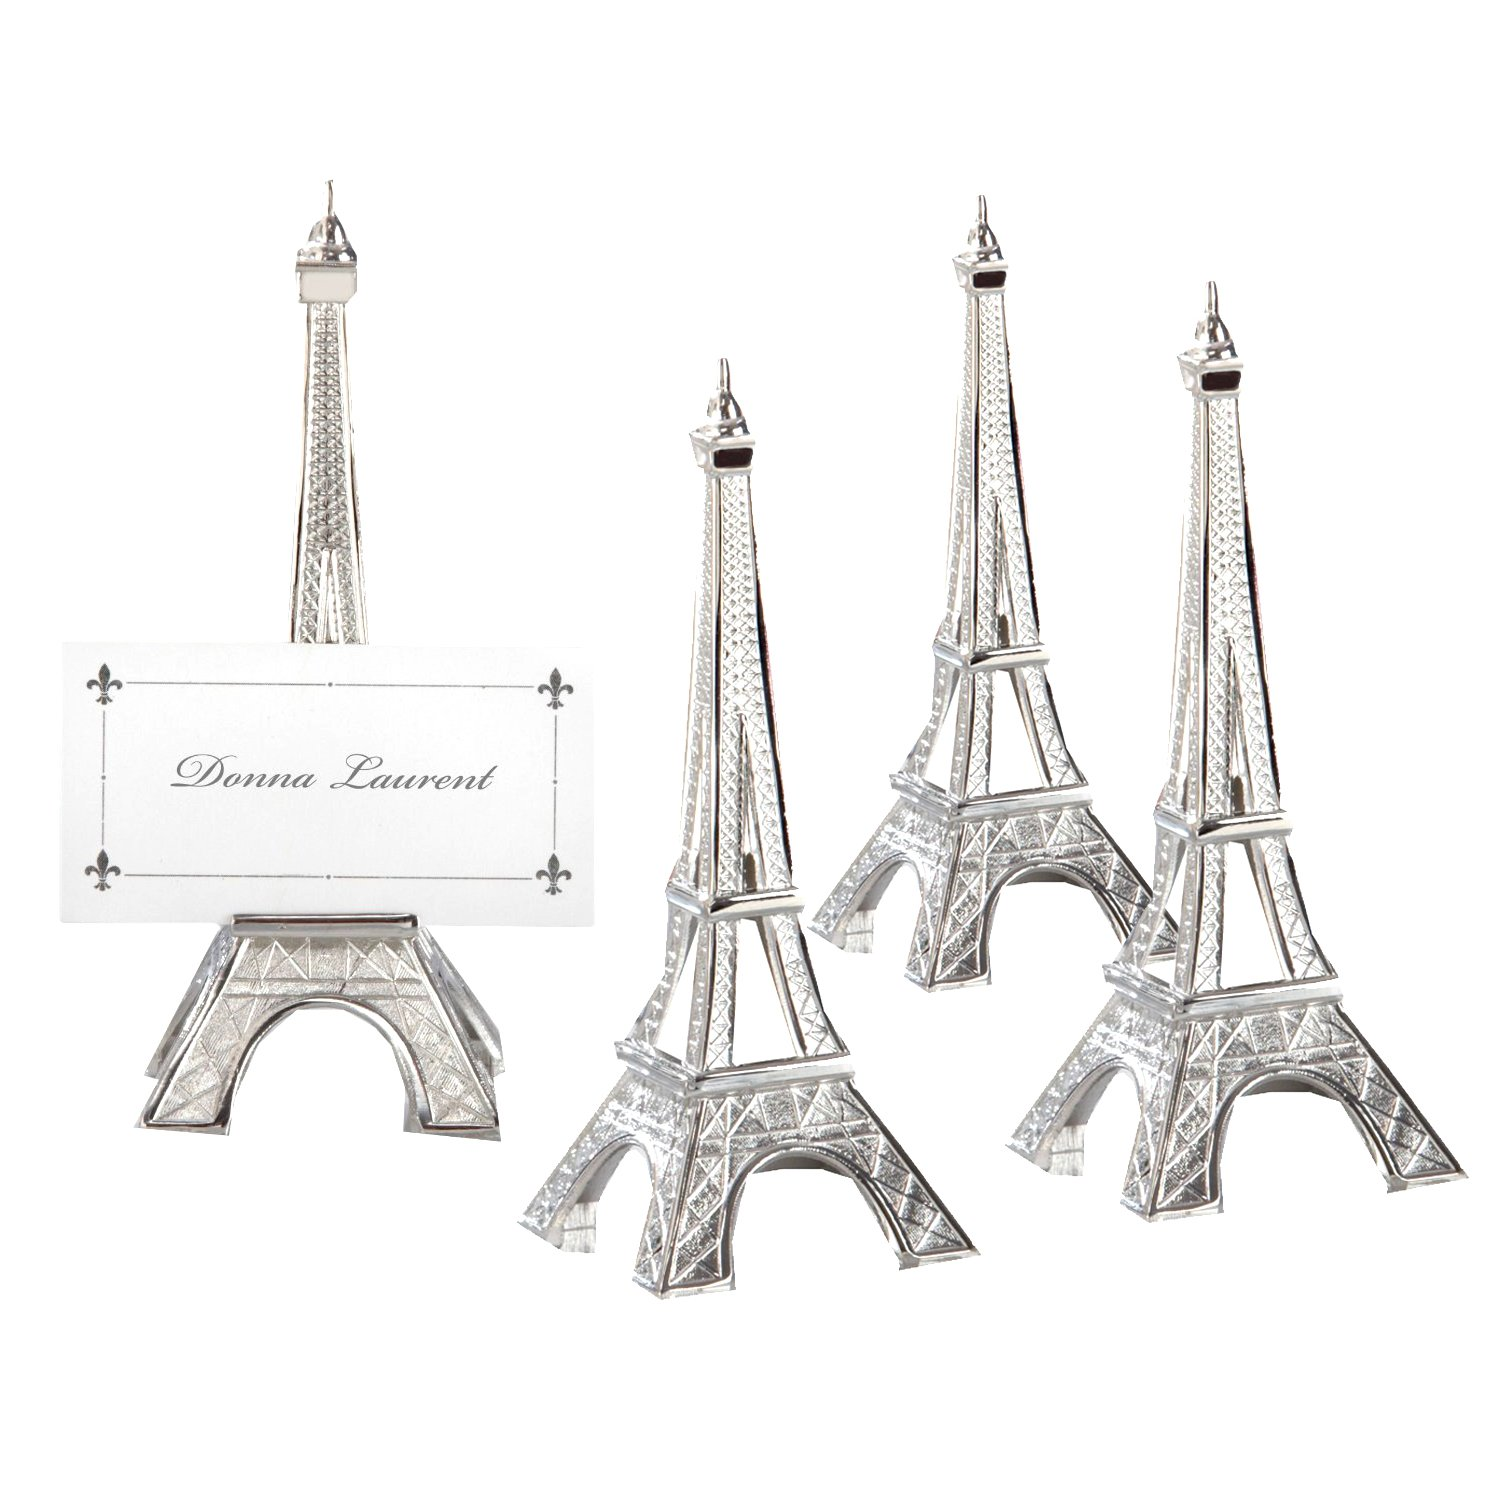 Evening in Paris Eiffel Tower Silver-Finish Place Card Holder set of 4 (Set of 18) - Party Favors by Kate Aspen